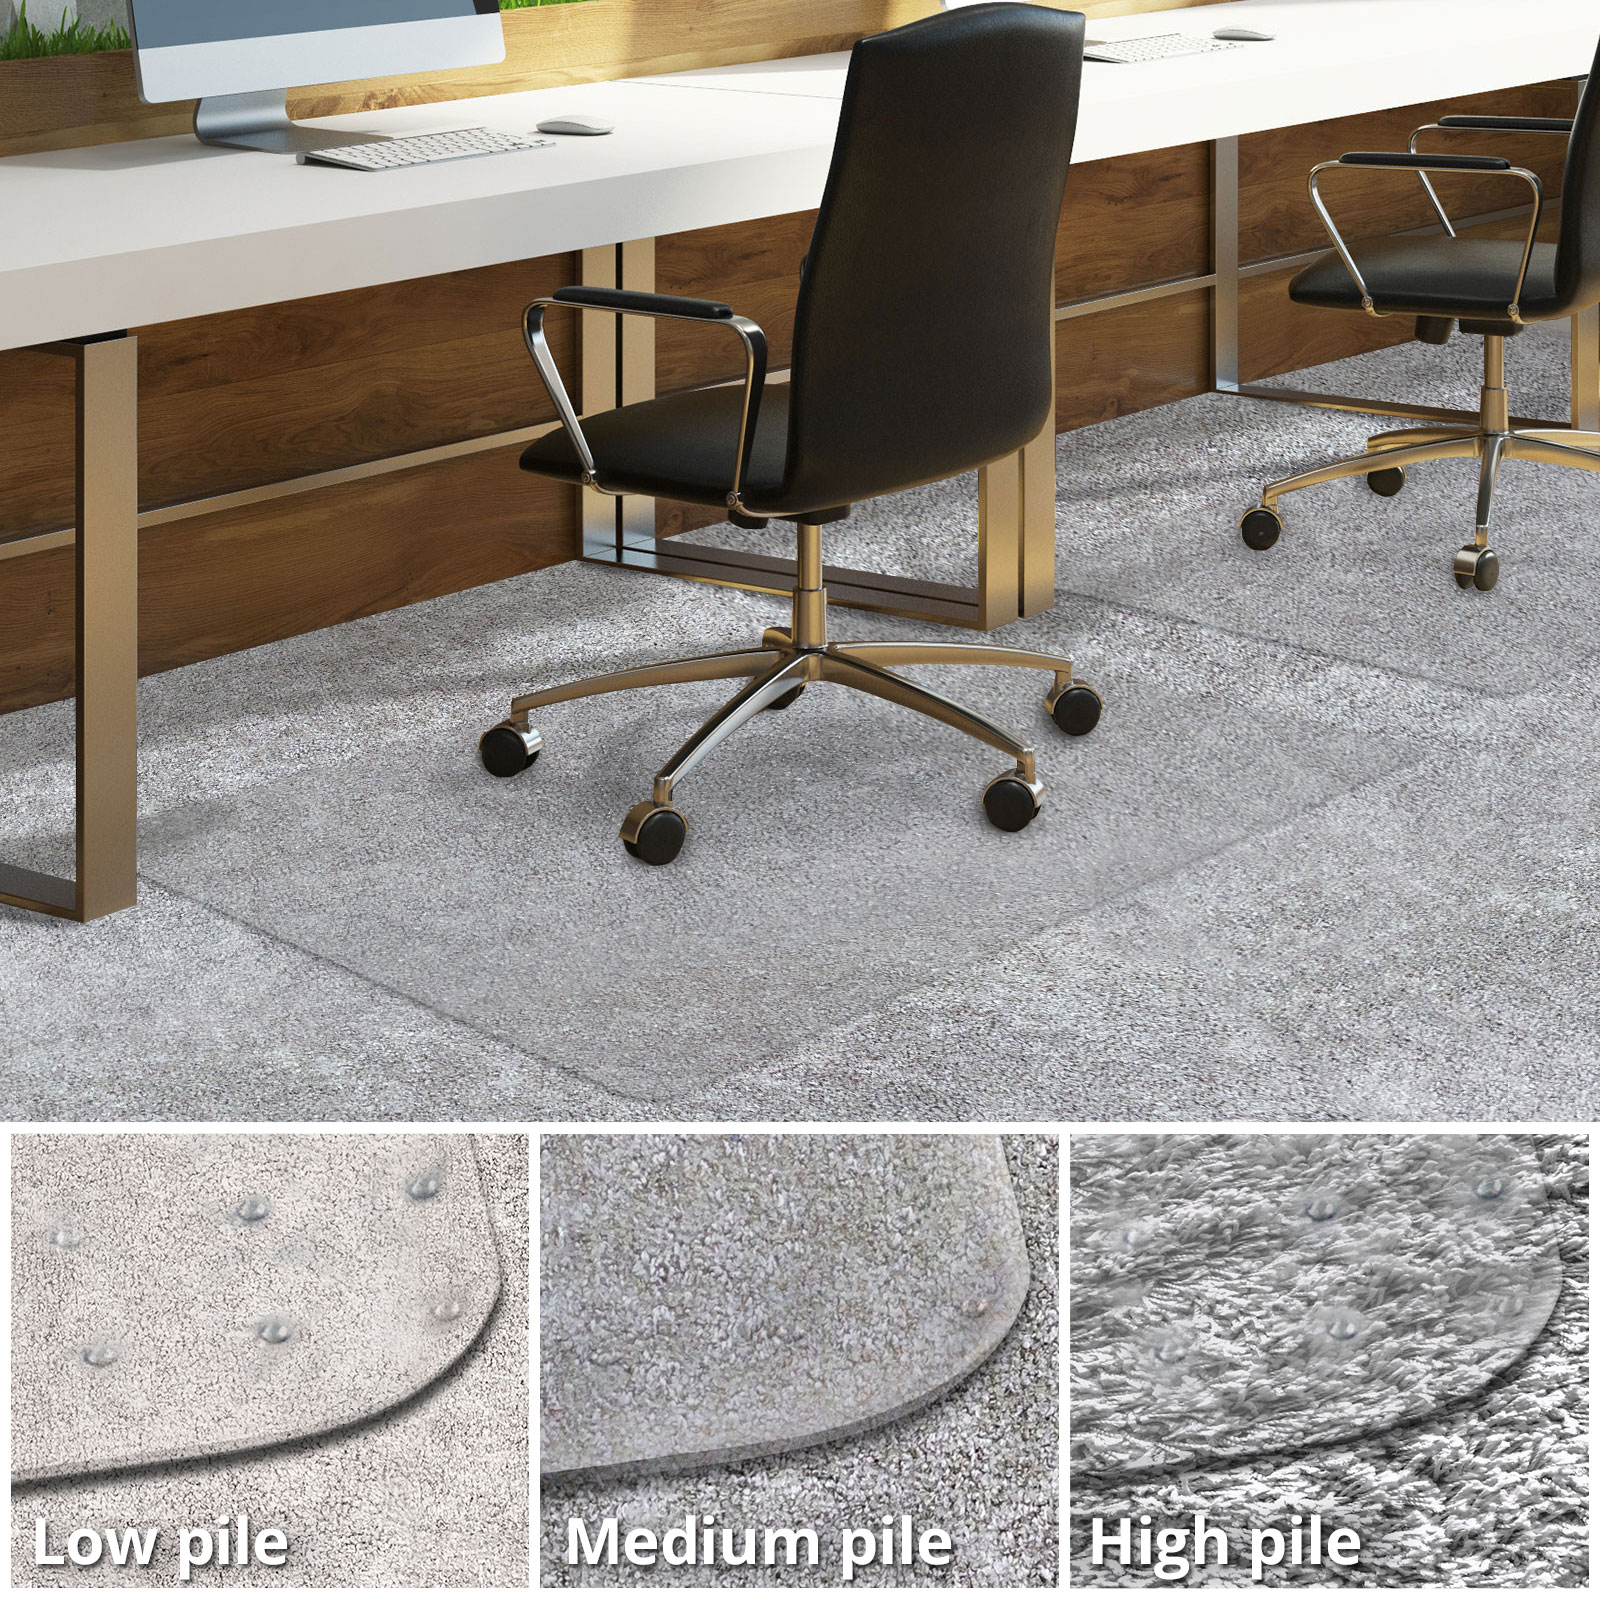 Desk Chair Mats Office Chair Mat For Carpeted Floors Desk Chair Mat For